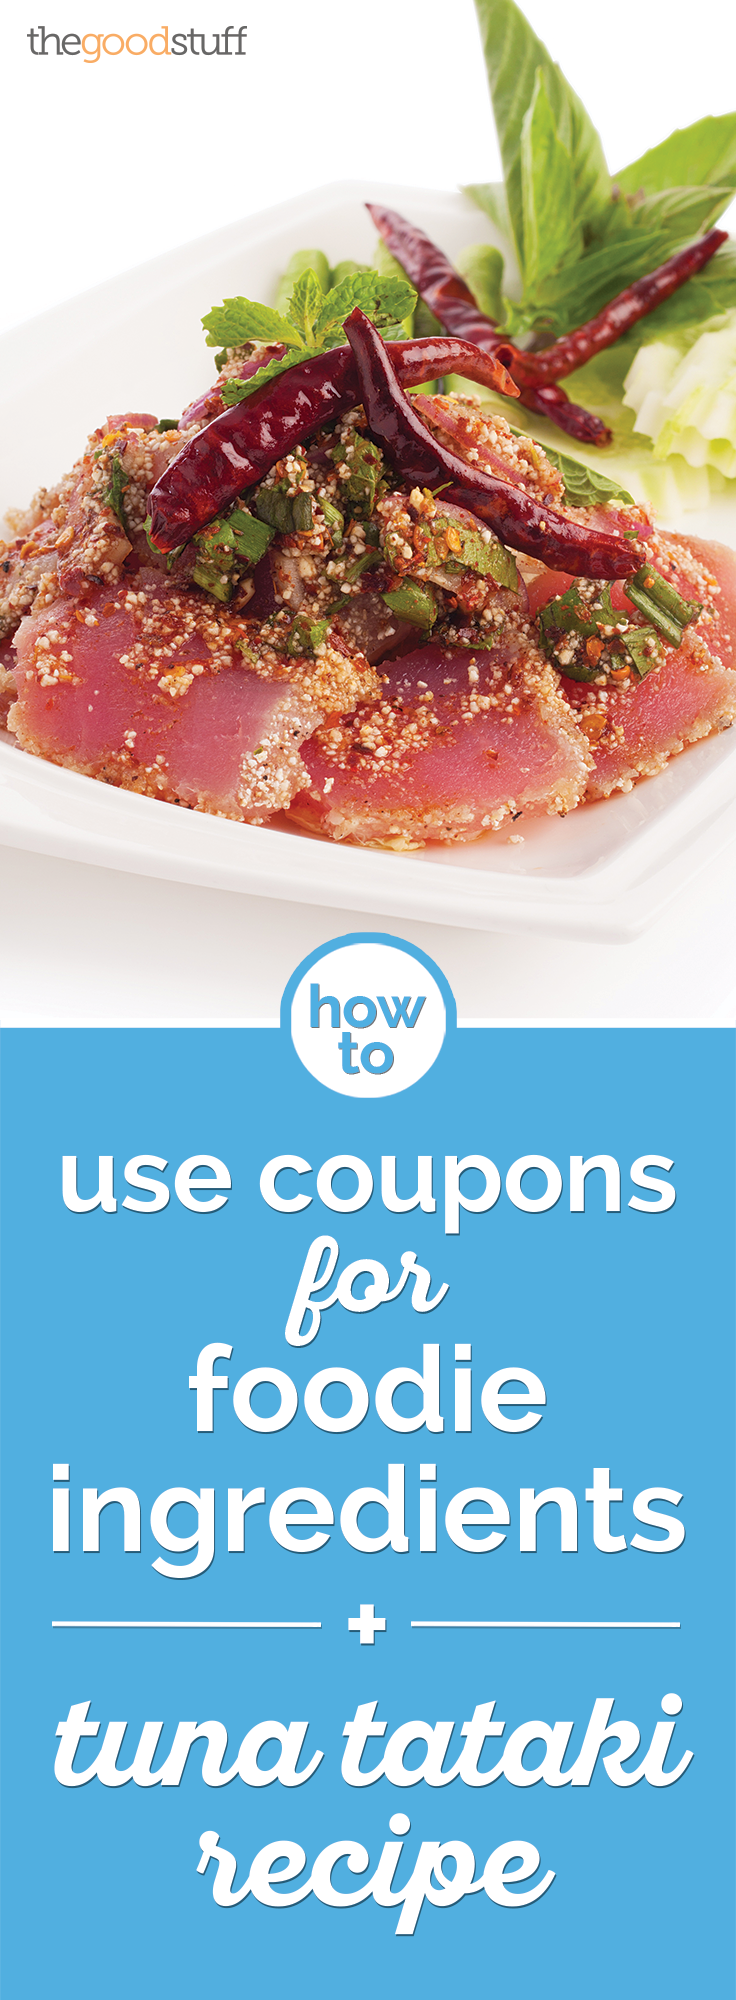 How to Use Coupons for Foodie Ingredients + Tuna Tataki Recipe | thegoodstuff